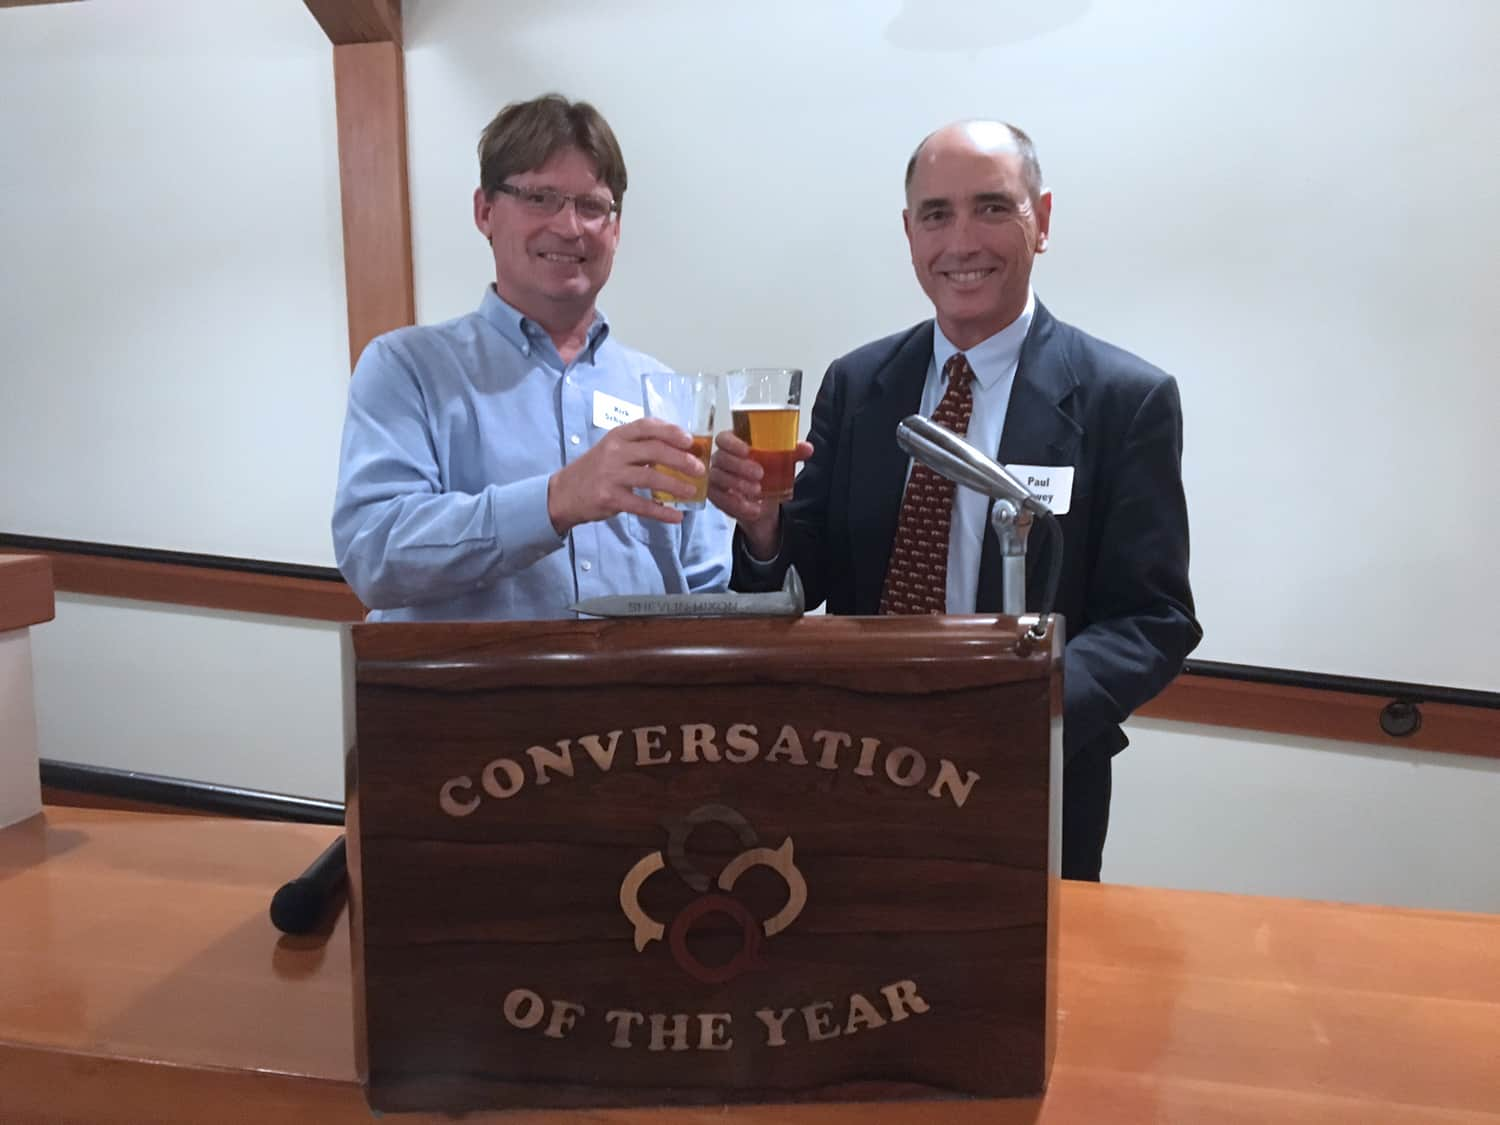 City Club of Announces Winner of Conversation of the Year Award